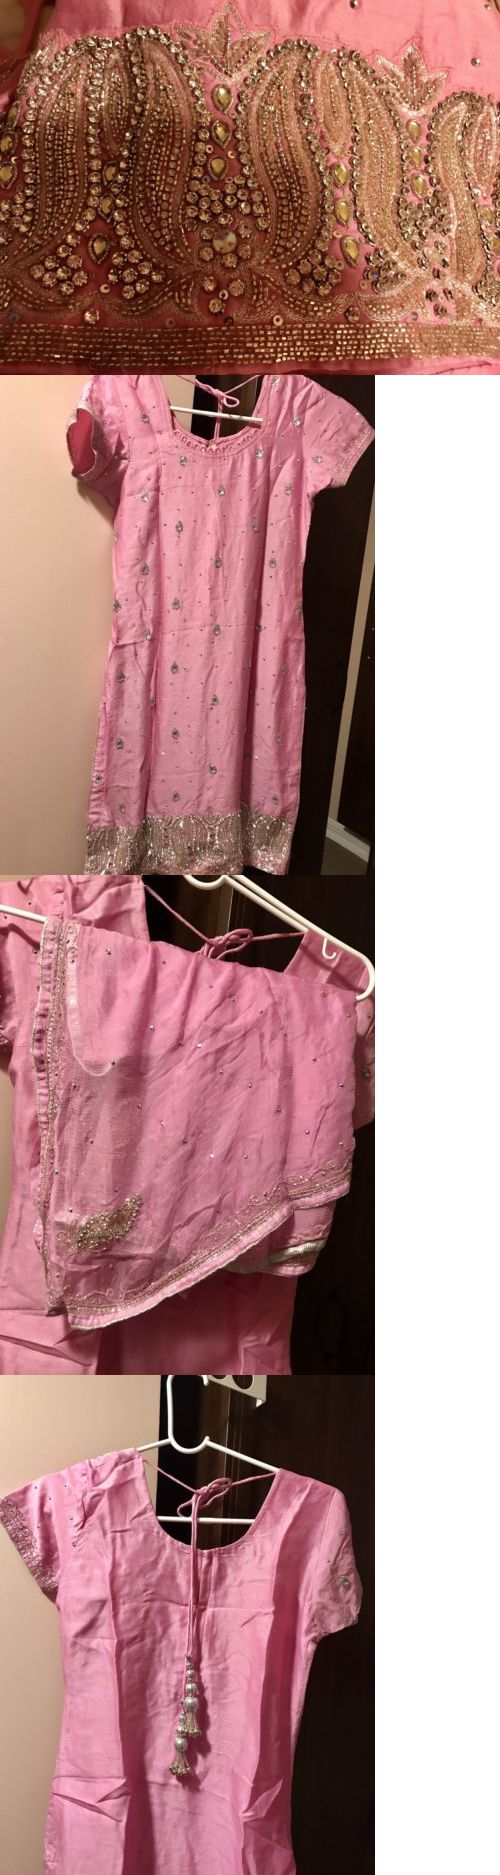 Salwar Kameez 155249: Indian Party Pink Punjabi Patiala Salwar Kameez -> BUY IT NOW ONLY: $30 on eBay!